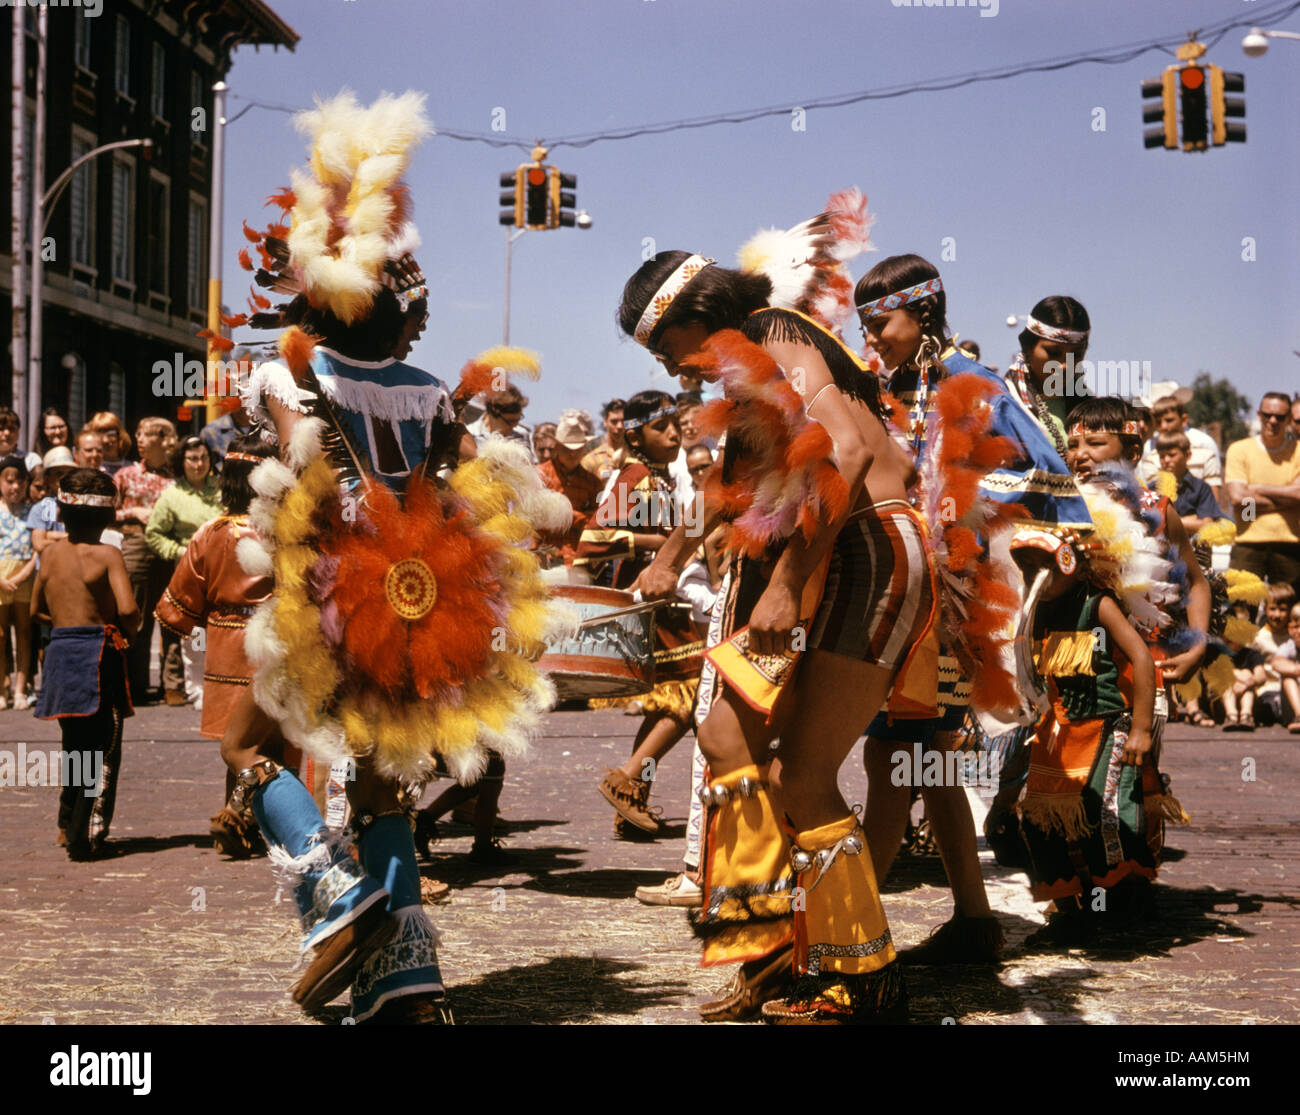 Années 70 RETRO SIOUX INDIAN TRIBAL DANCE NORTH PLATTE NEBRASKA Native American Photo Stock